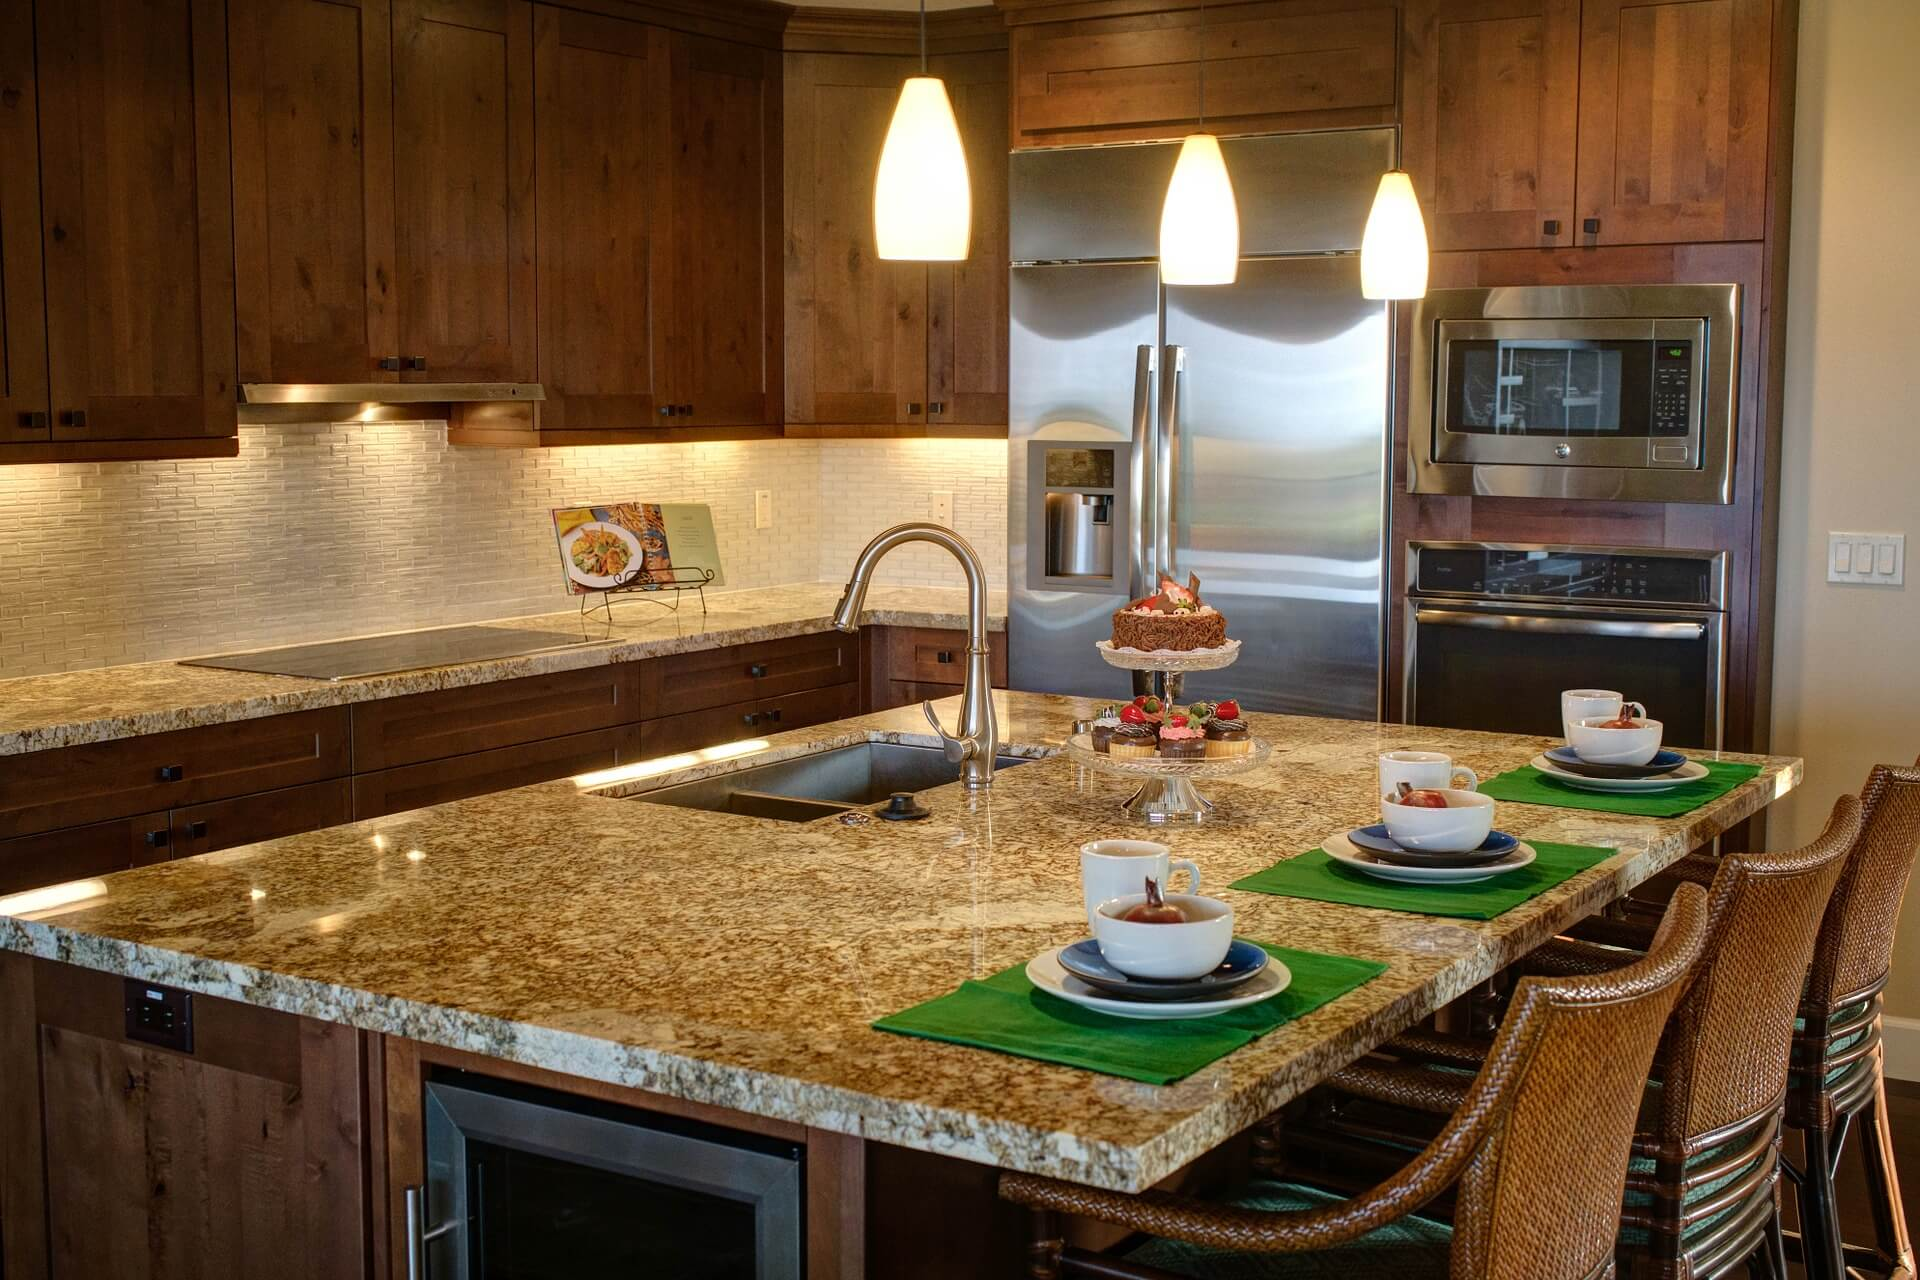 Kitchen Cabinet Resurfacing - SoFlo Kitchen Remodeling & Custom Cabinet Installation - backsplashes, flooring, countertops